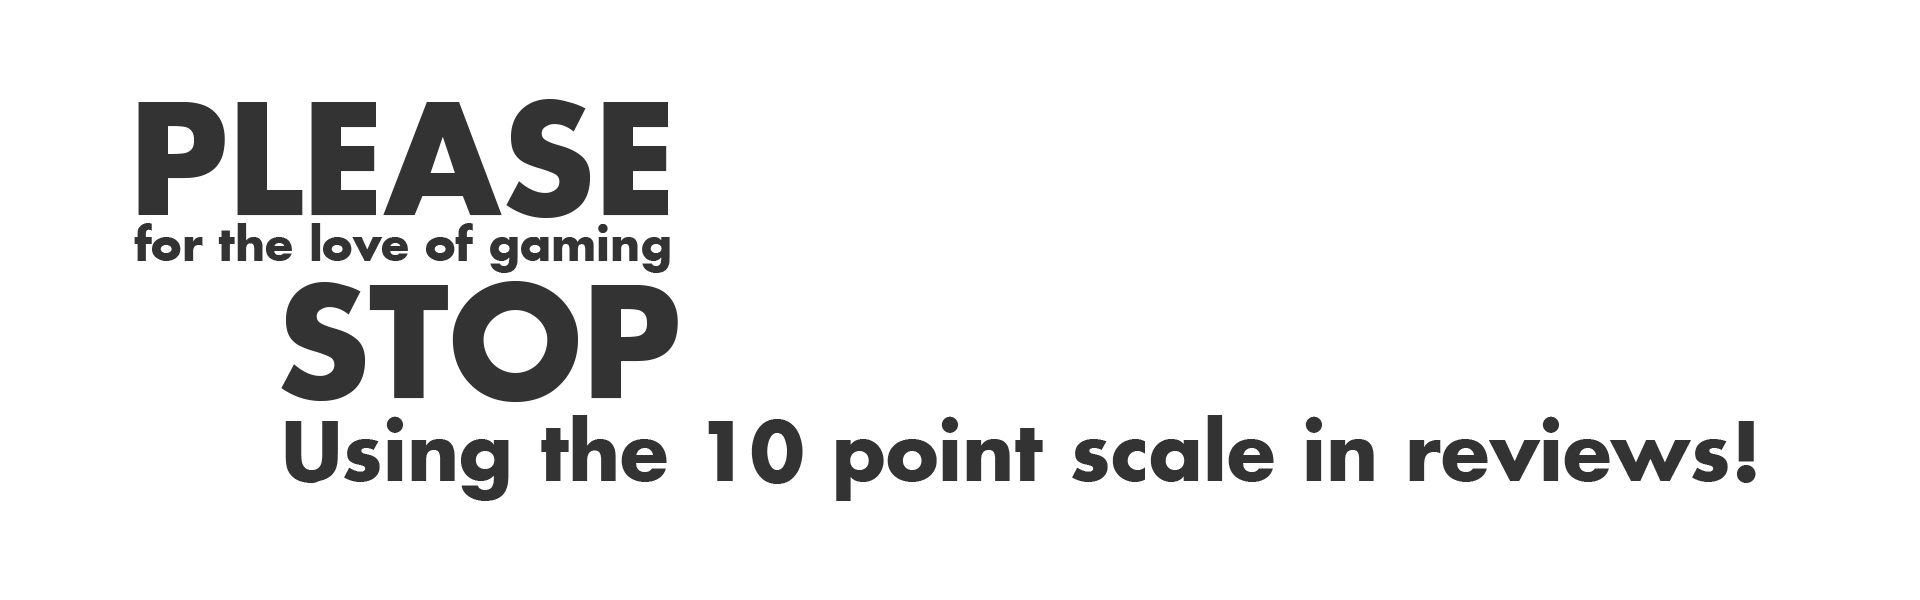 e097e7f916 The 10 Point Review Scale is Terrible – lonely_astronaut – Medium